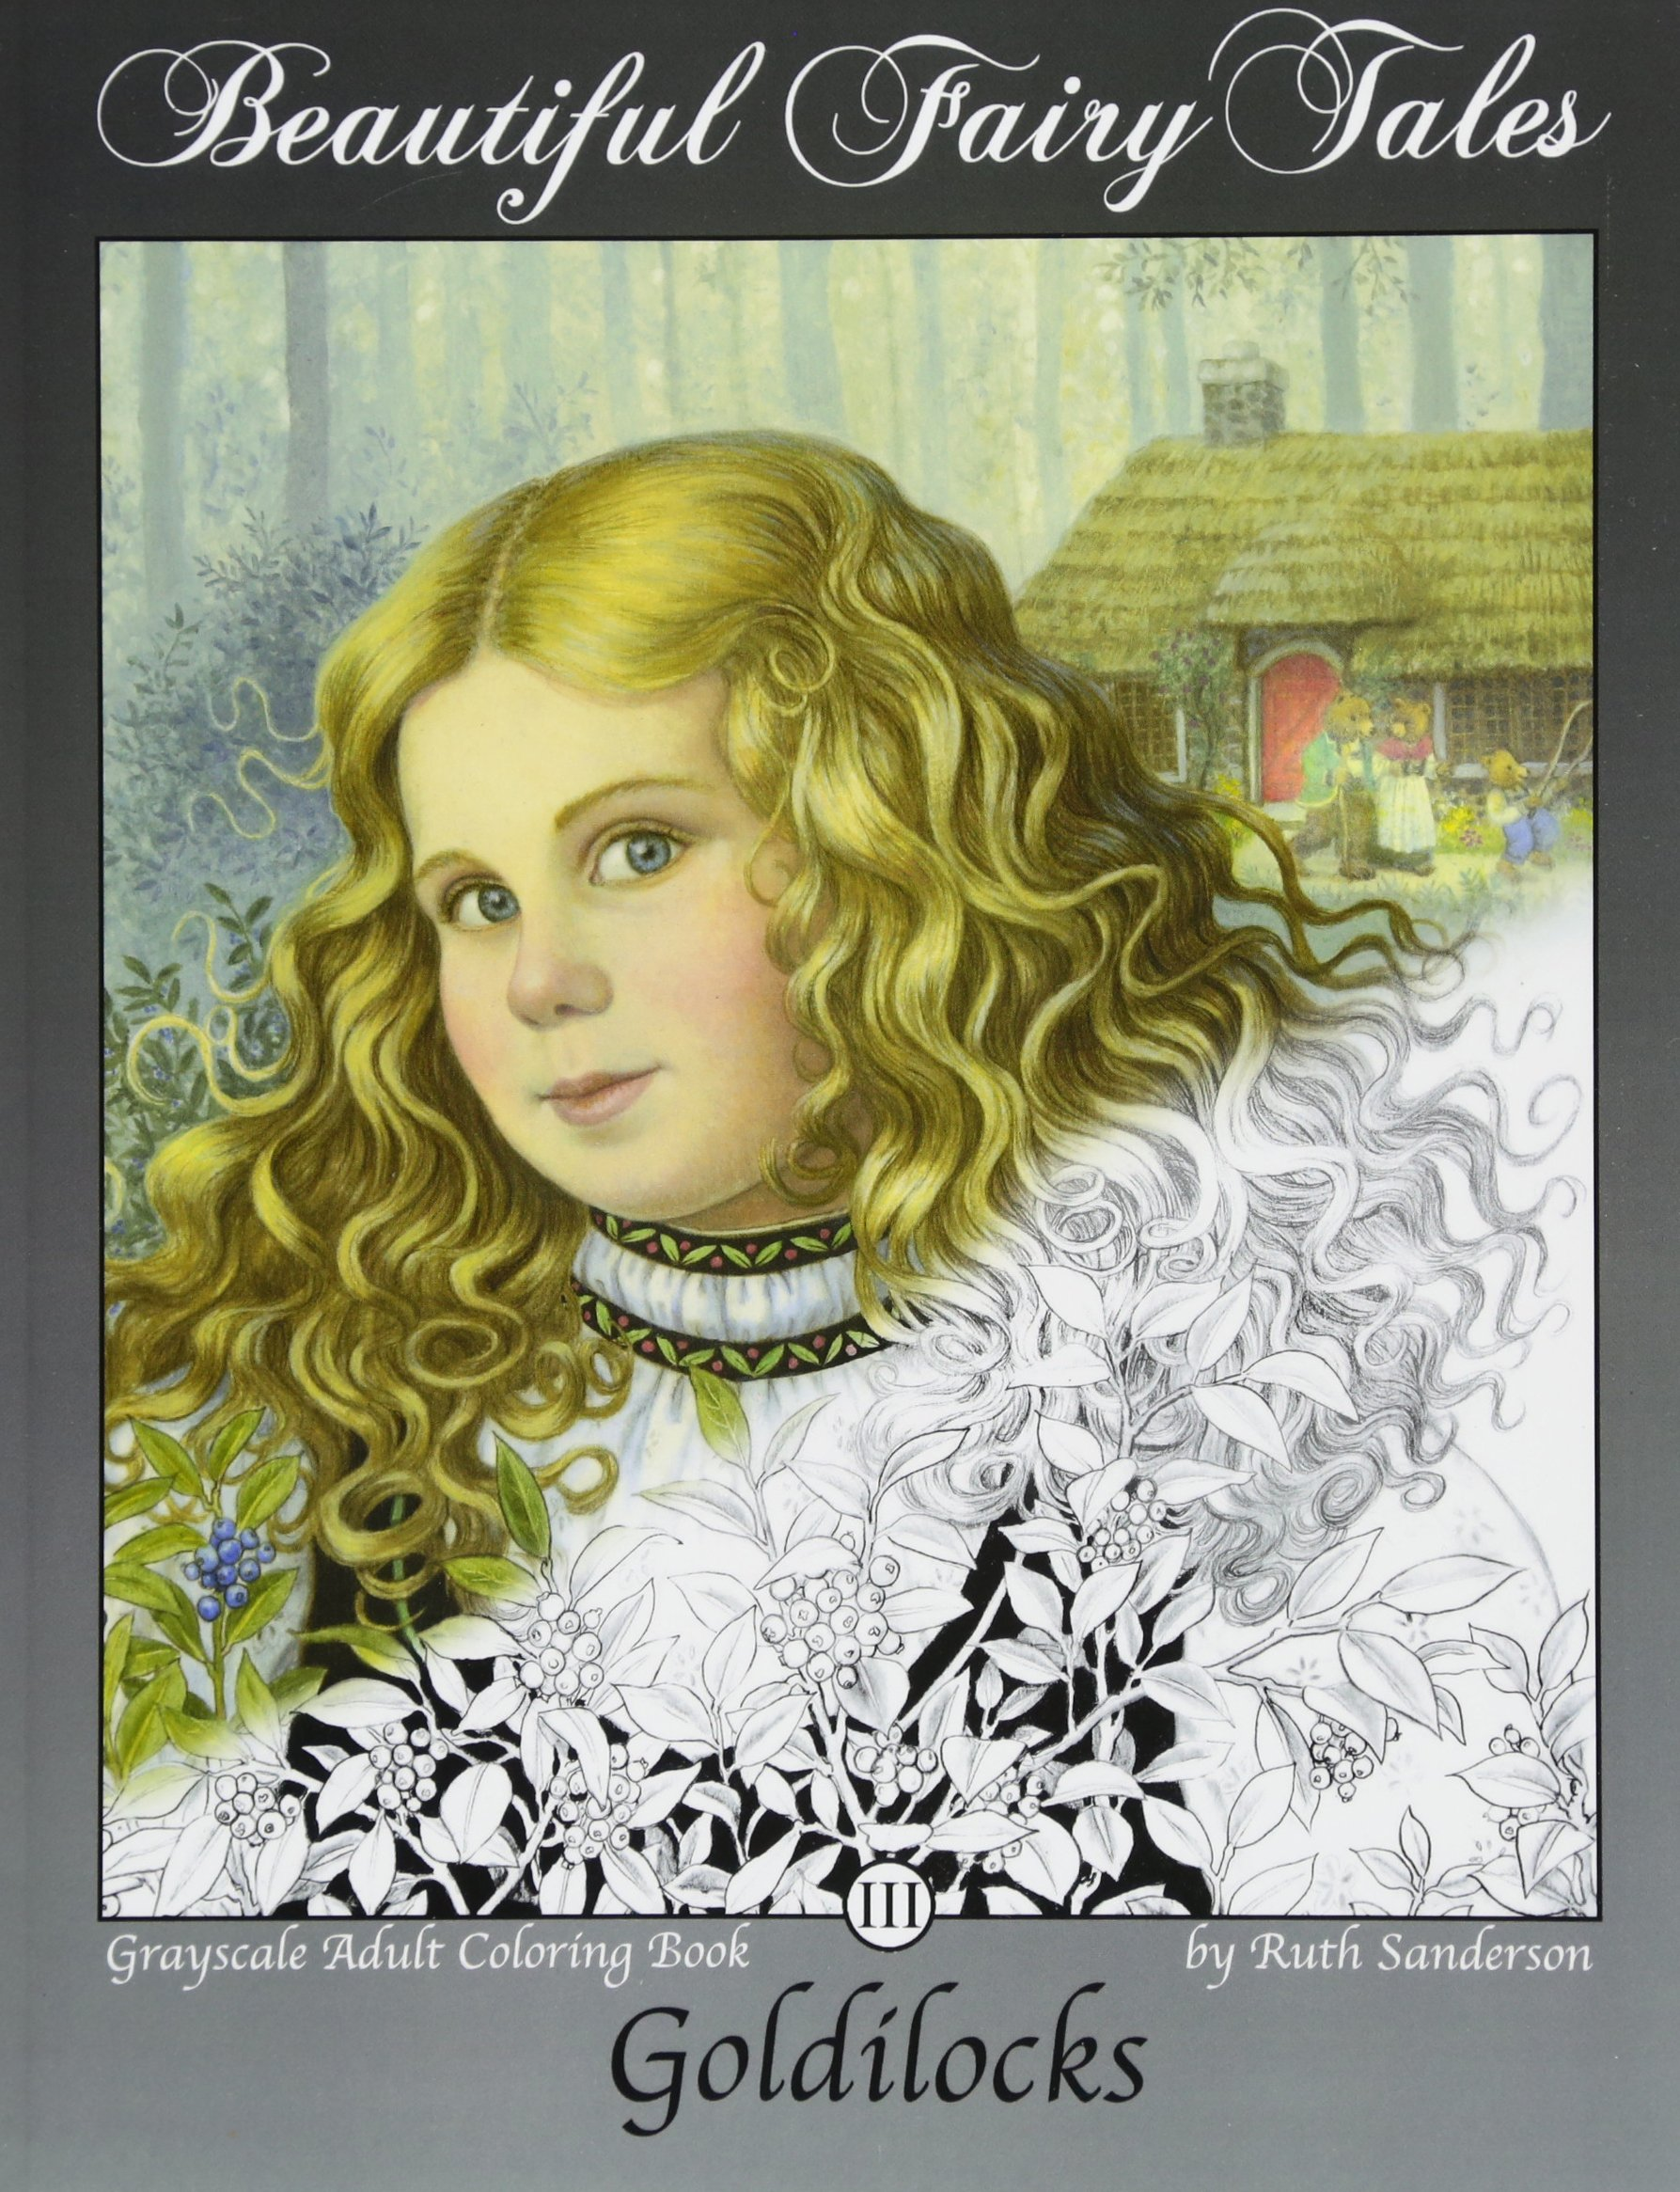 goldilocks-grayscale-adult-coloring-book-beautiful-fairy-tales-volume-3